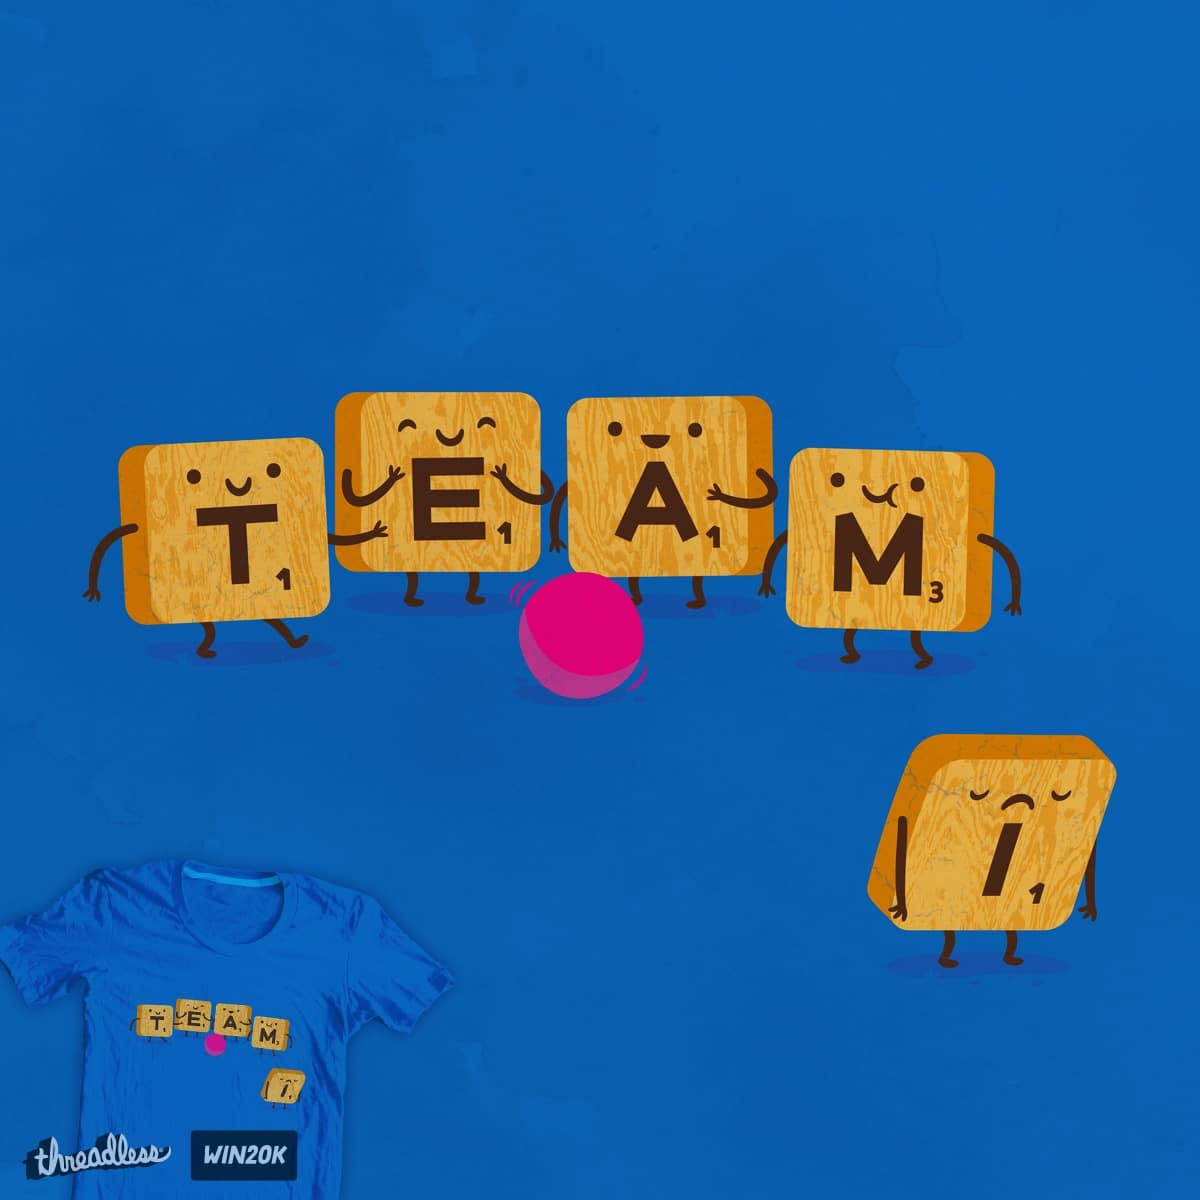 There's No I In Team by pilihp and danrule on Threadless